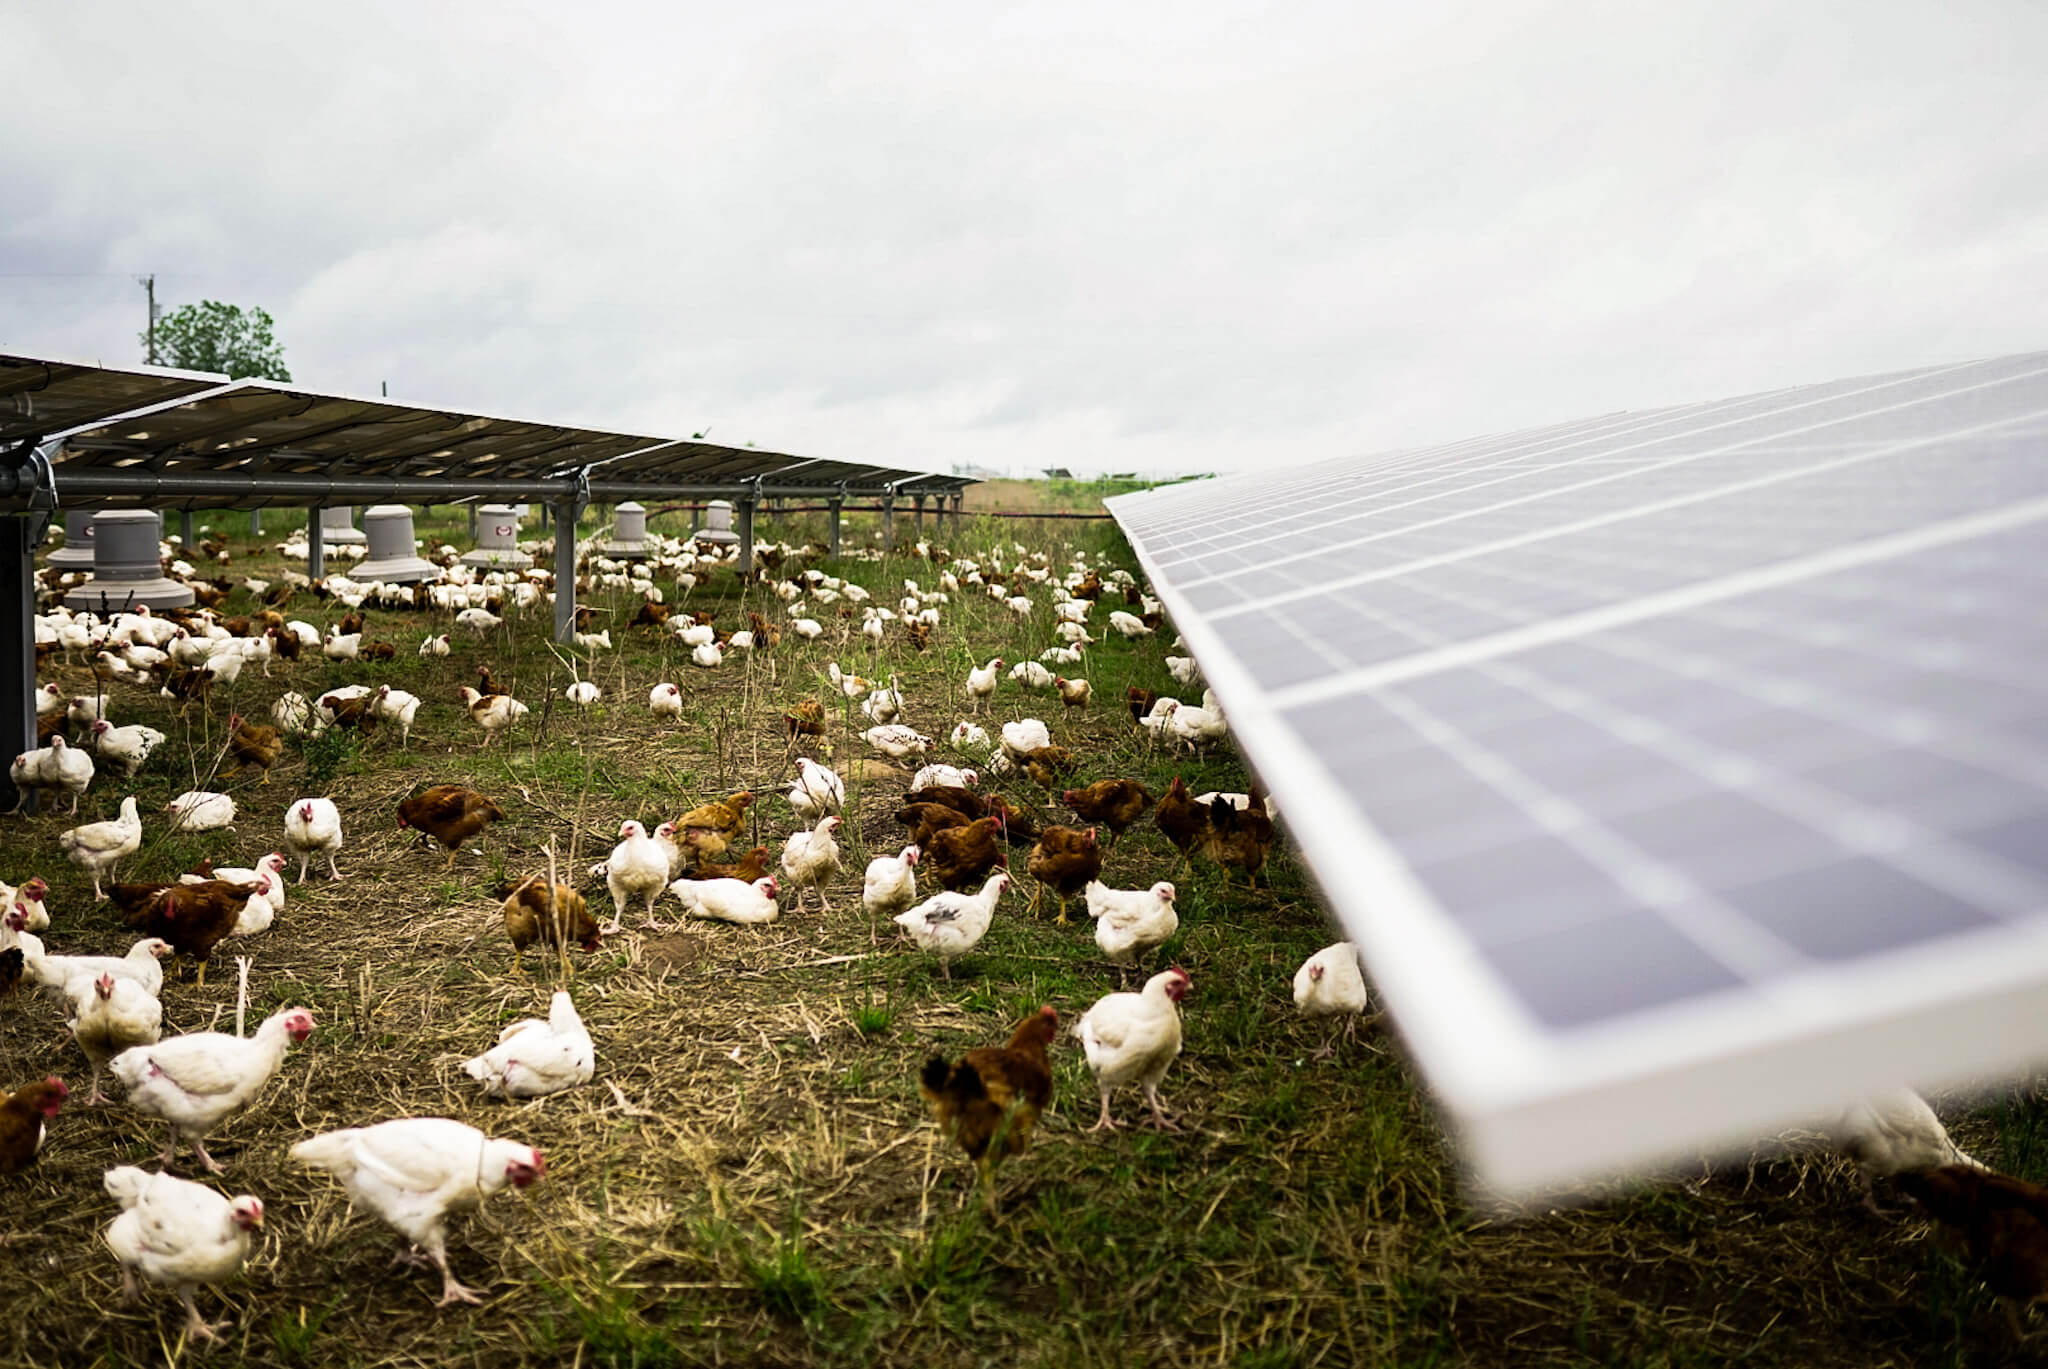 Chickens pasture raised poultry solar grazing